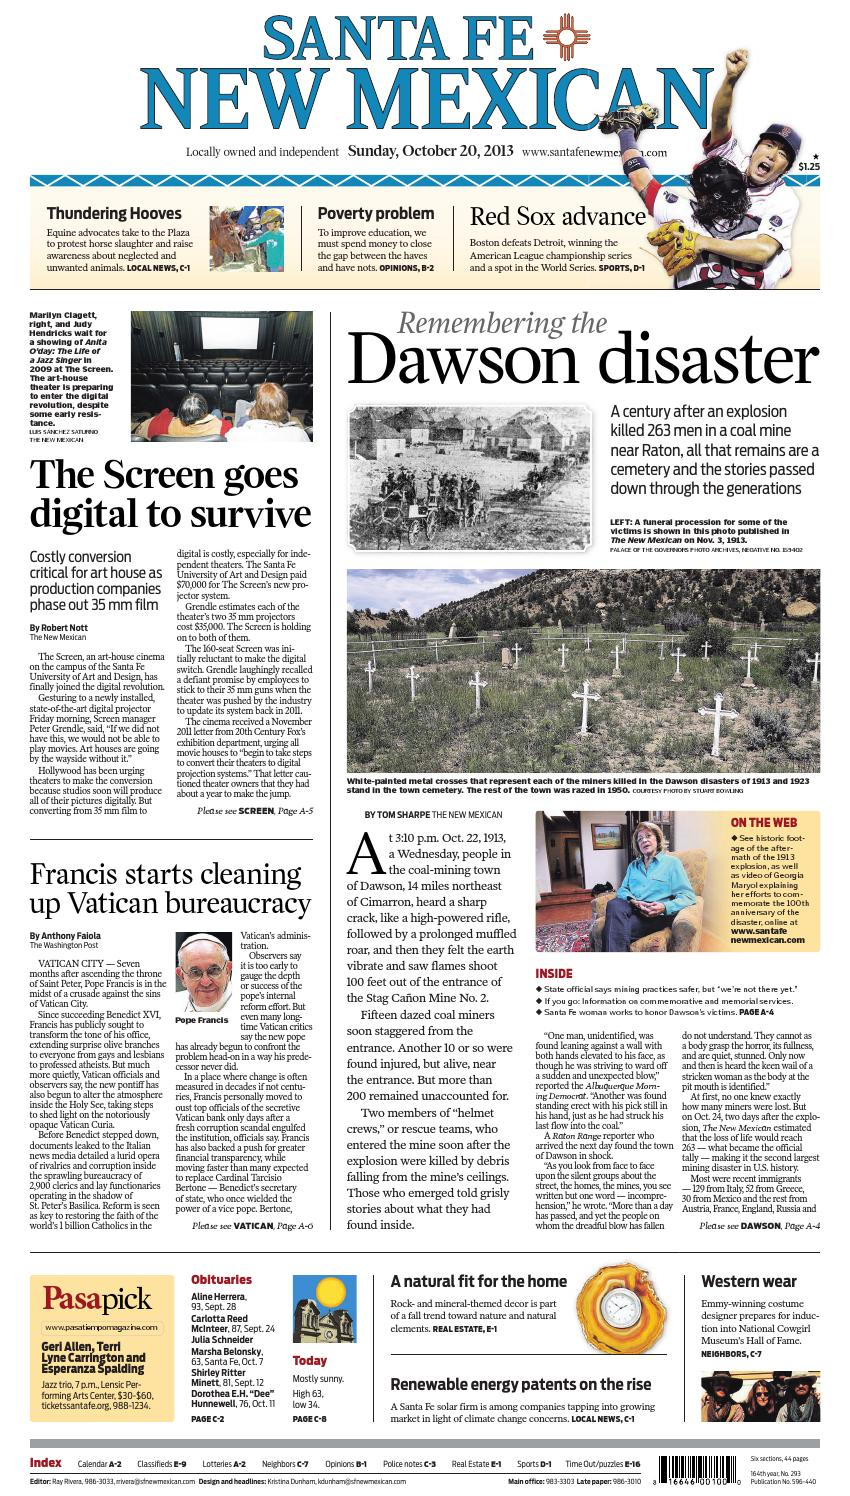 Santa Fe New Mexican, Oct  20, 2013 by The New Mexican - issuu